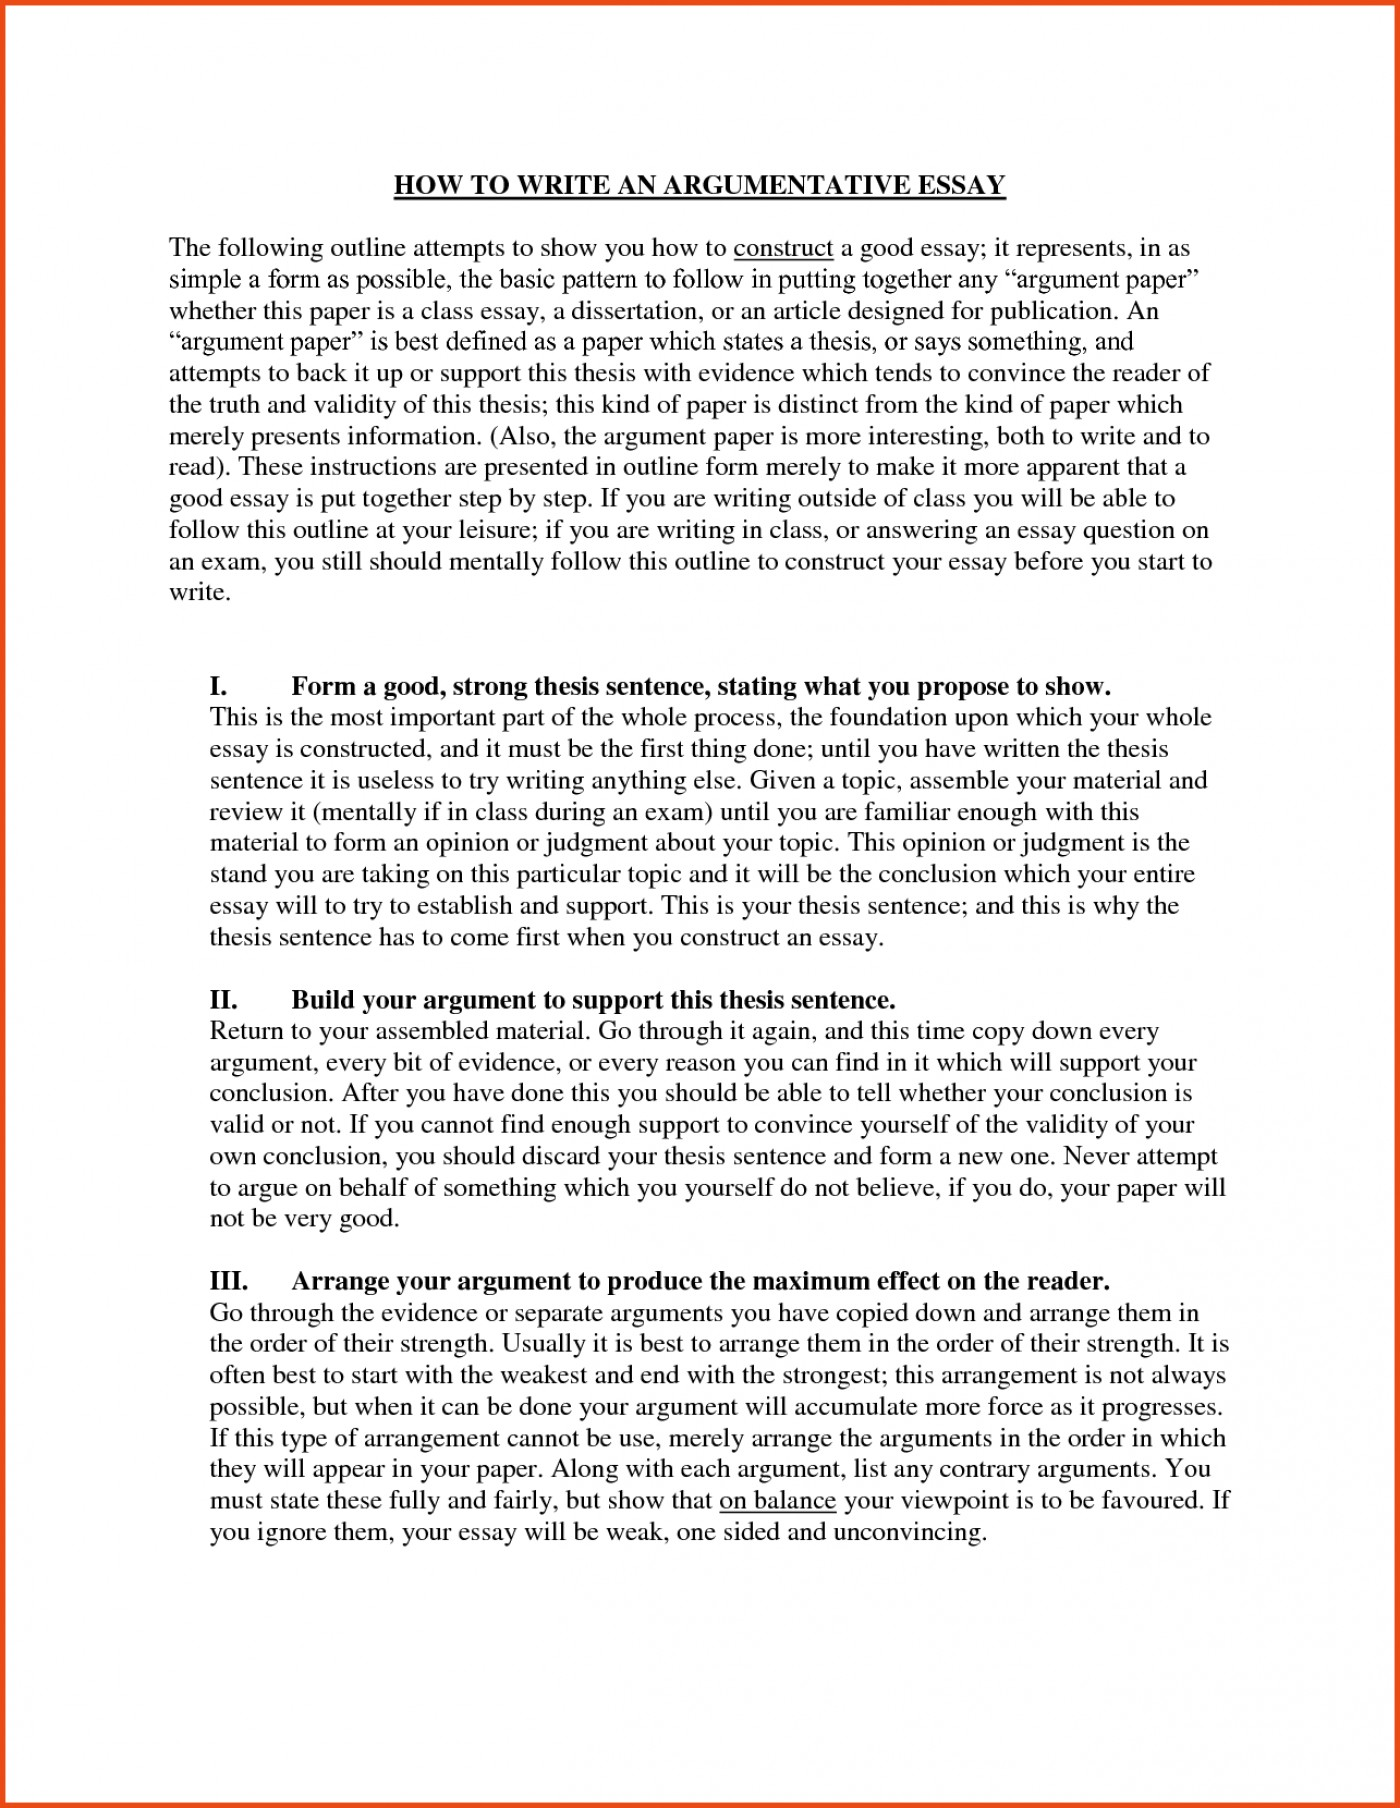 005 Essay Example How To Start An Brilliant Ideas Of Good Ways About Yourself Dissertation Nice Amazing Analysis On A Book With Question Two Books 1400